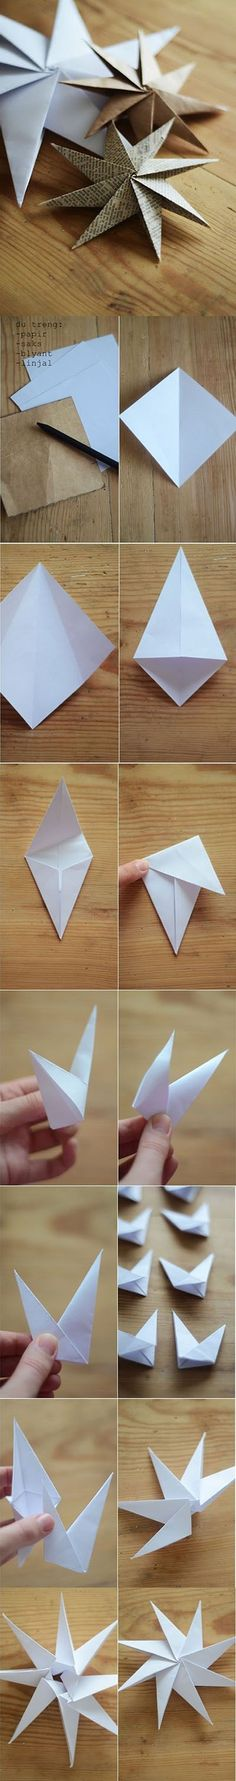 Easy And Beautiful Paper Craft | DIY & Crafts Tutorials